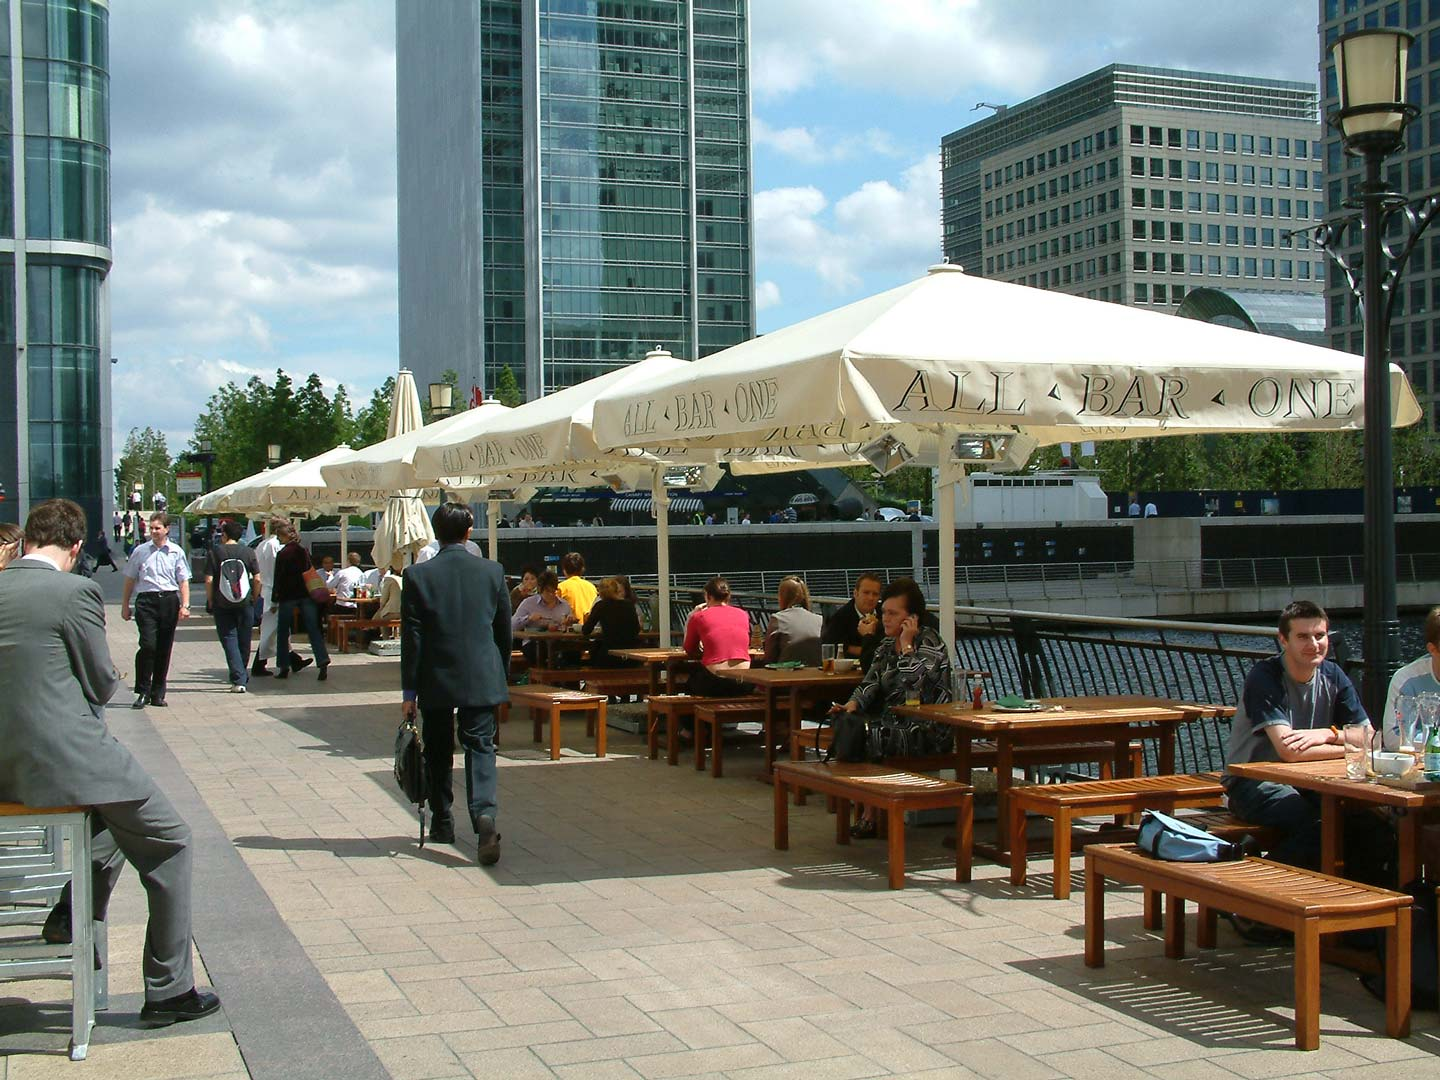 All Bar One Canary Wharf Indigo Awnings